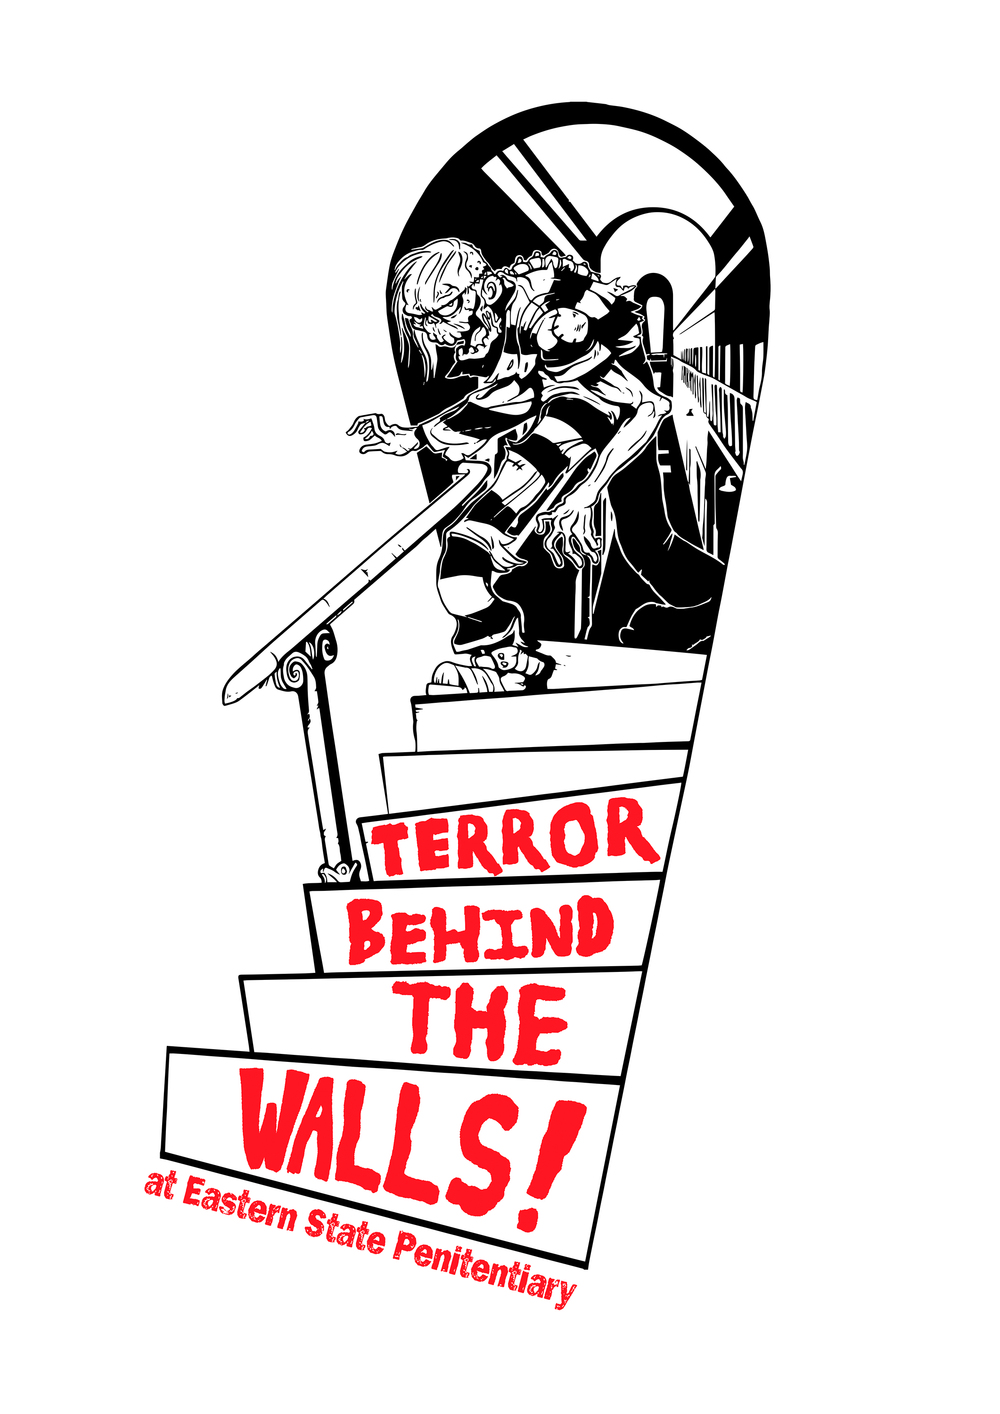 Terror Behind the Walls Advertisement